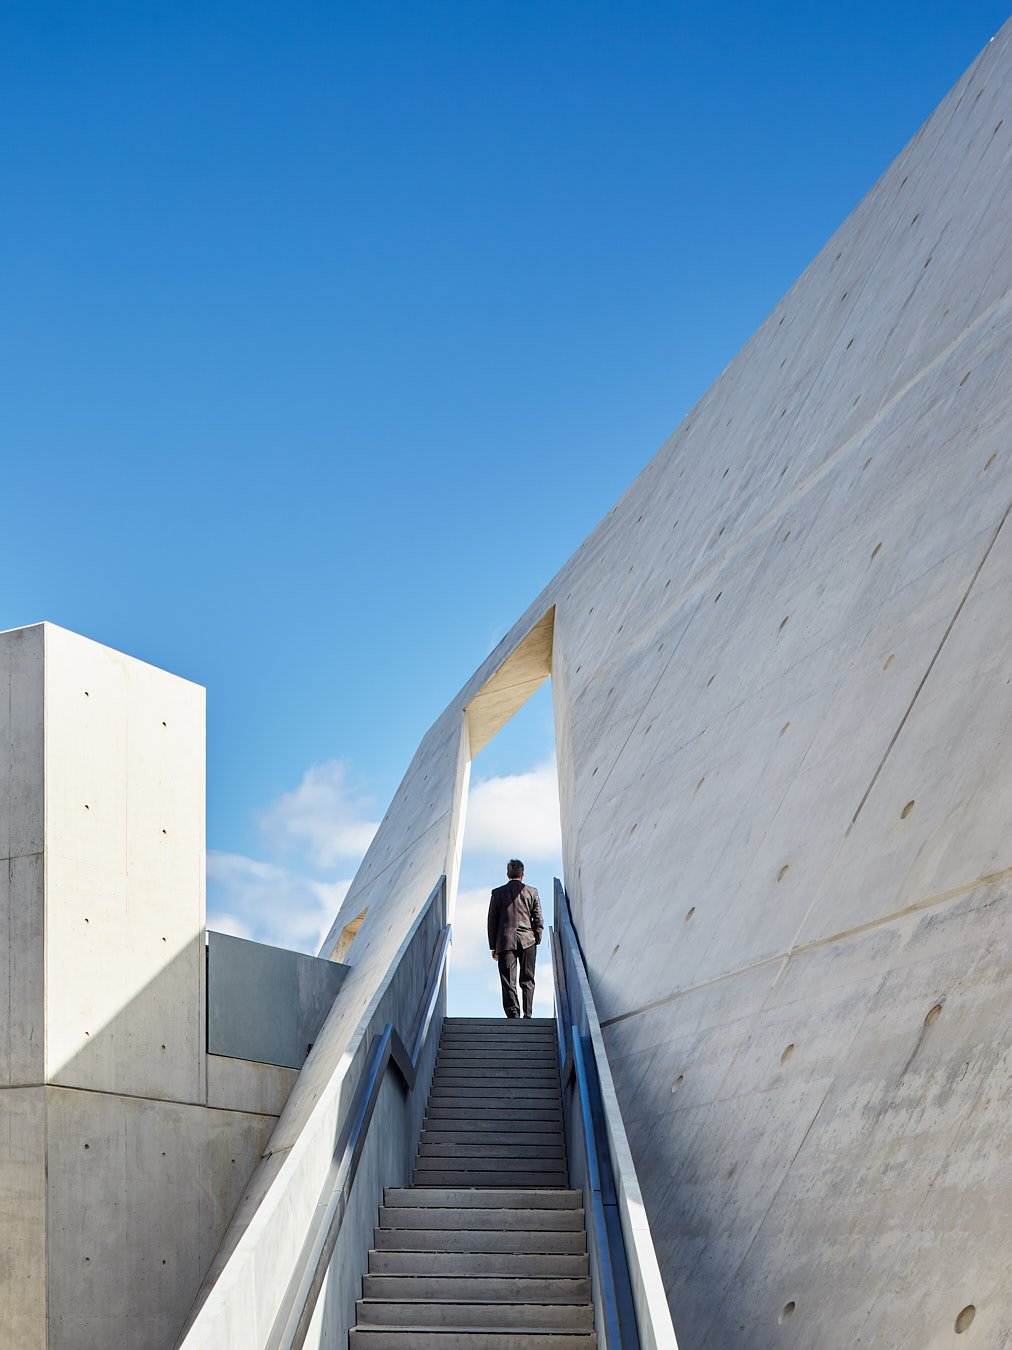 Son of Holocaust Survivor  walks through the Arch at the National Holocaust Monument